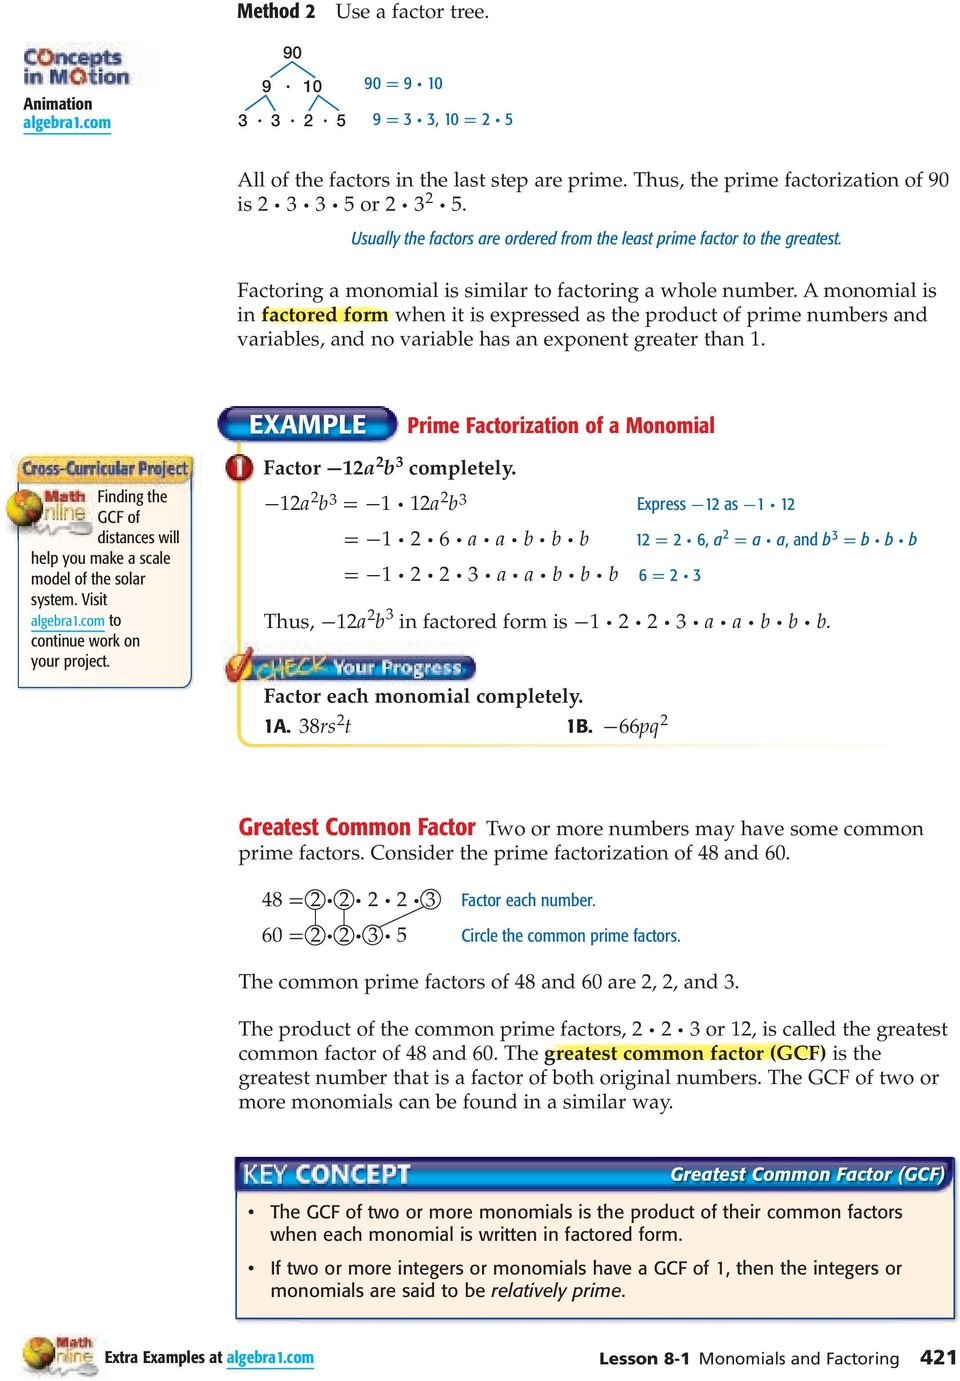 A monomial is in factored form when it is expressed as the product of prime numbers and variables, and no variable has an exponent greater than 1.